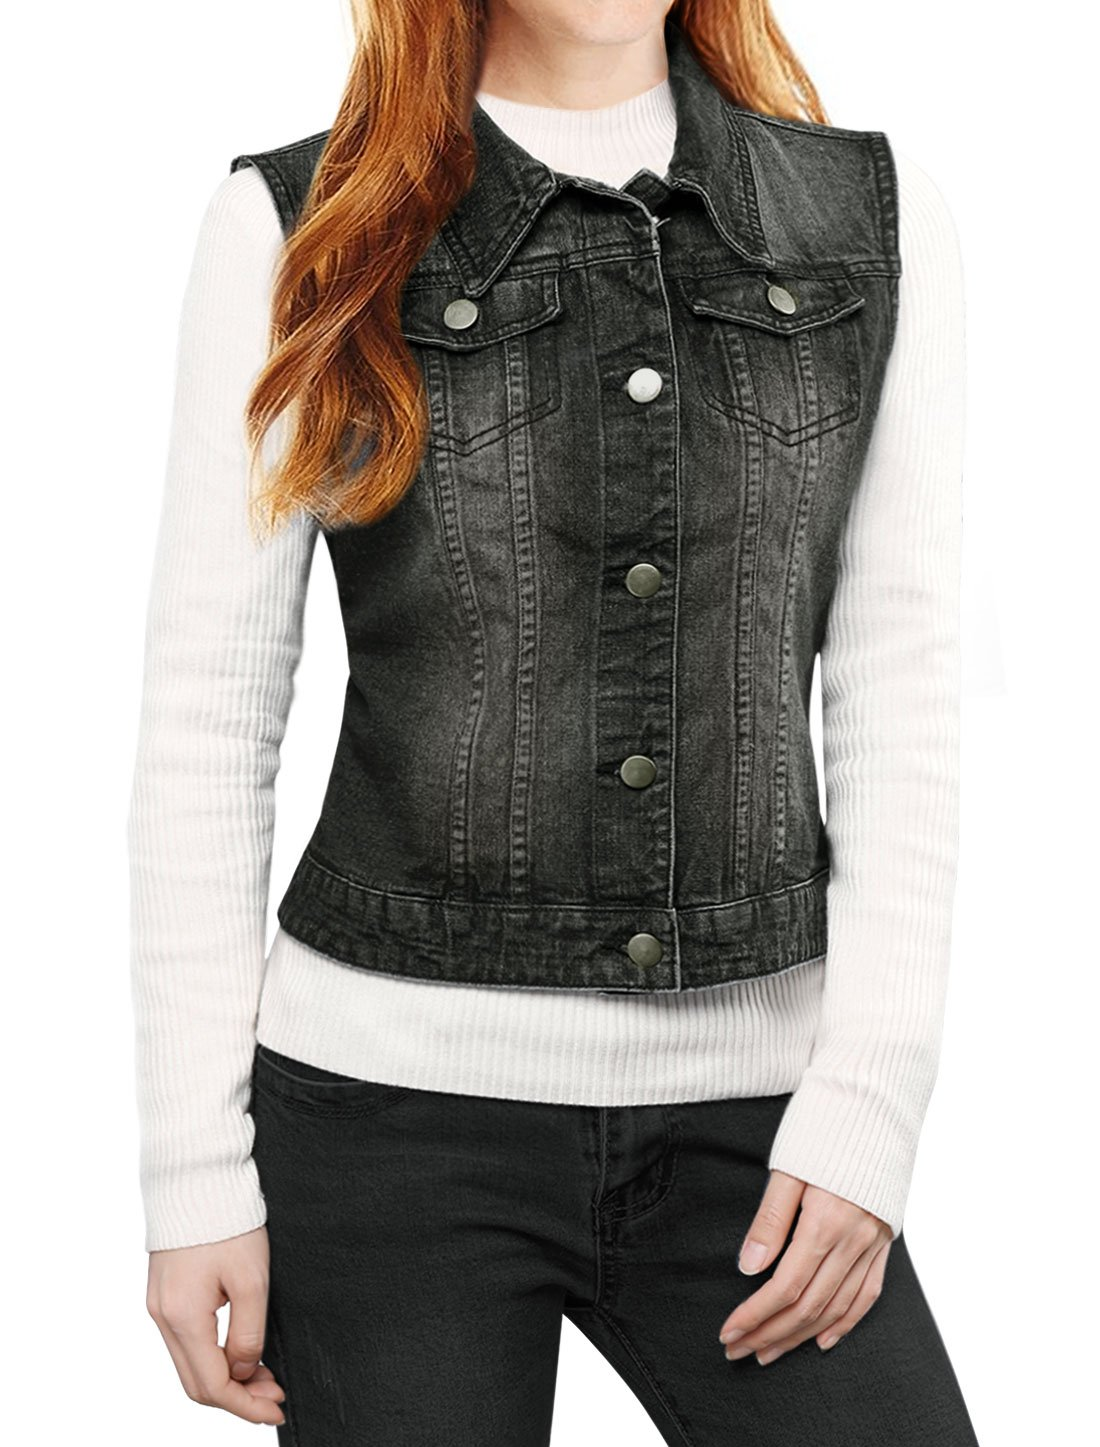 Allegra K Women's Buttoned Washed Denim Vest w Flap Pockets Black M a16092300ux0403